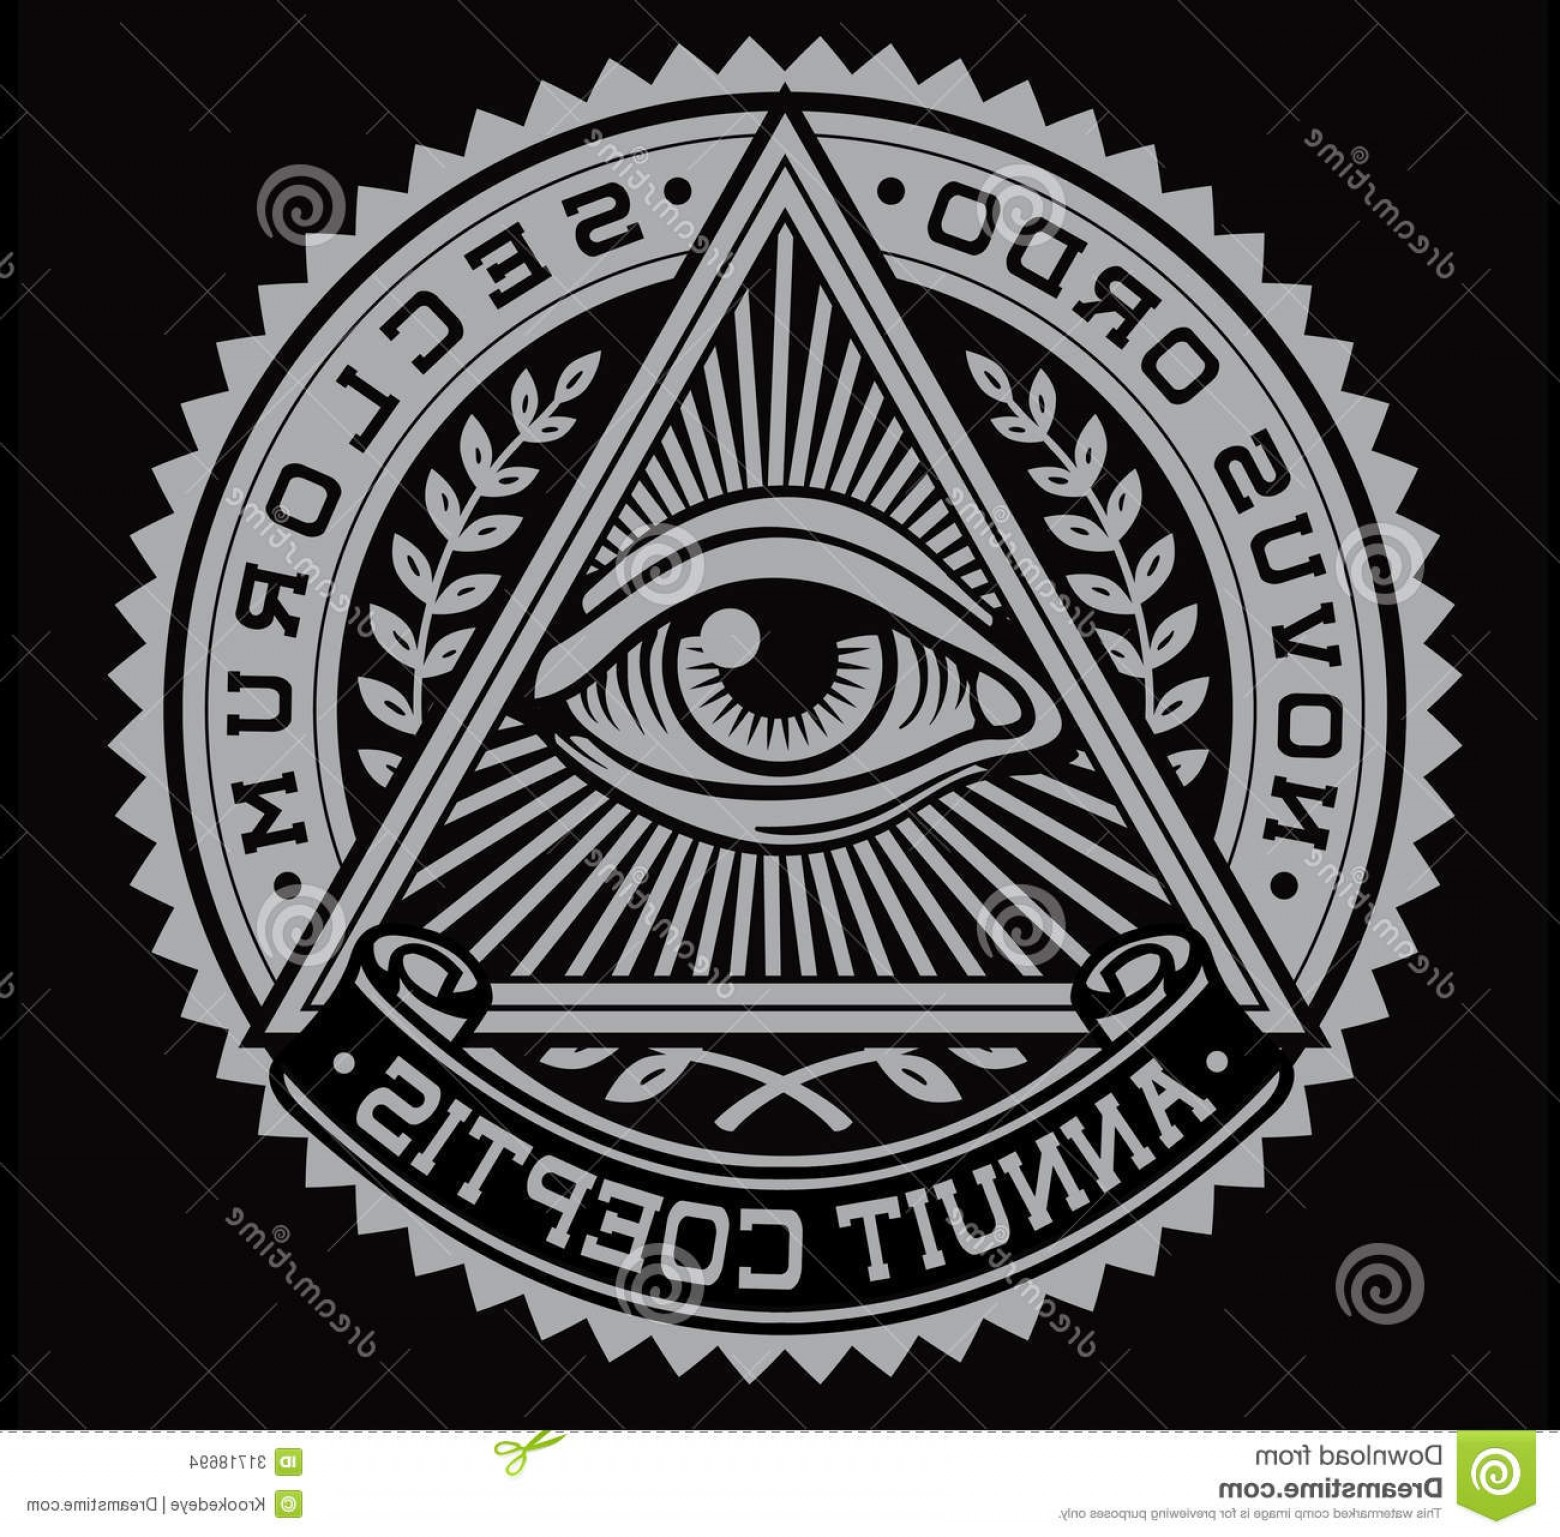 1560x1537 Stock Images All Seeing Eye Vector Image Providence Image Lazttweet